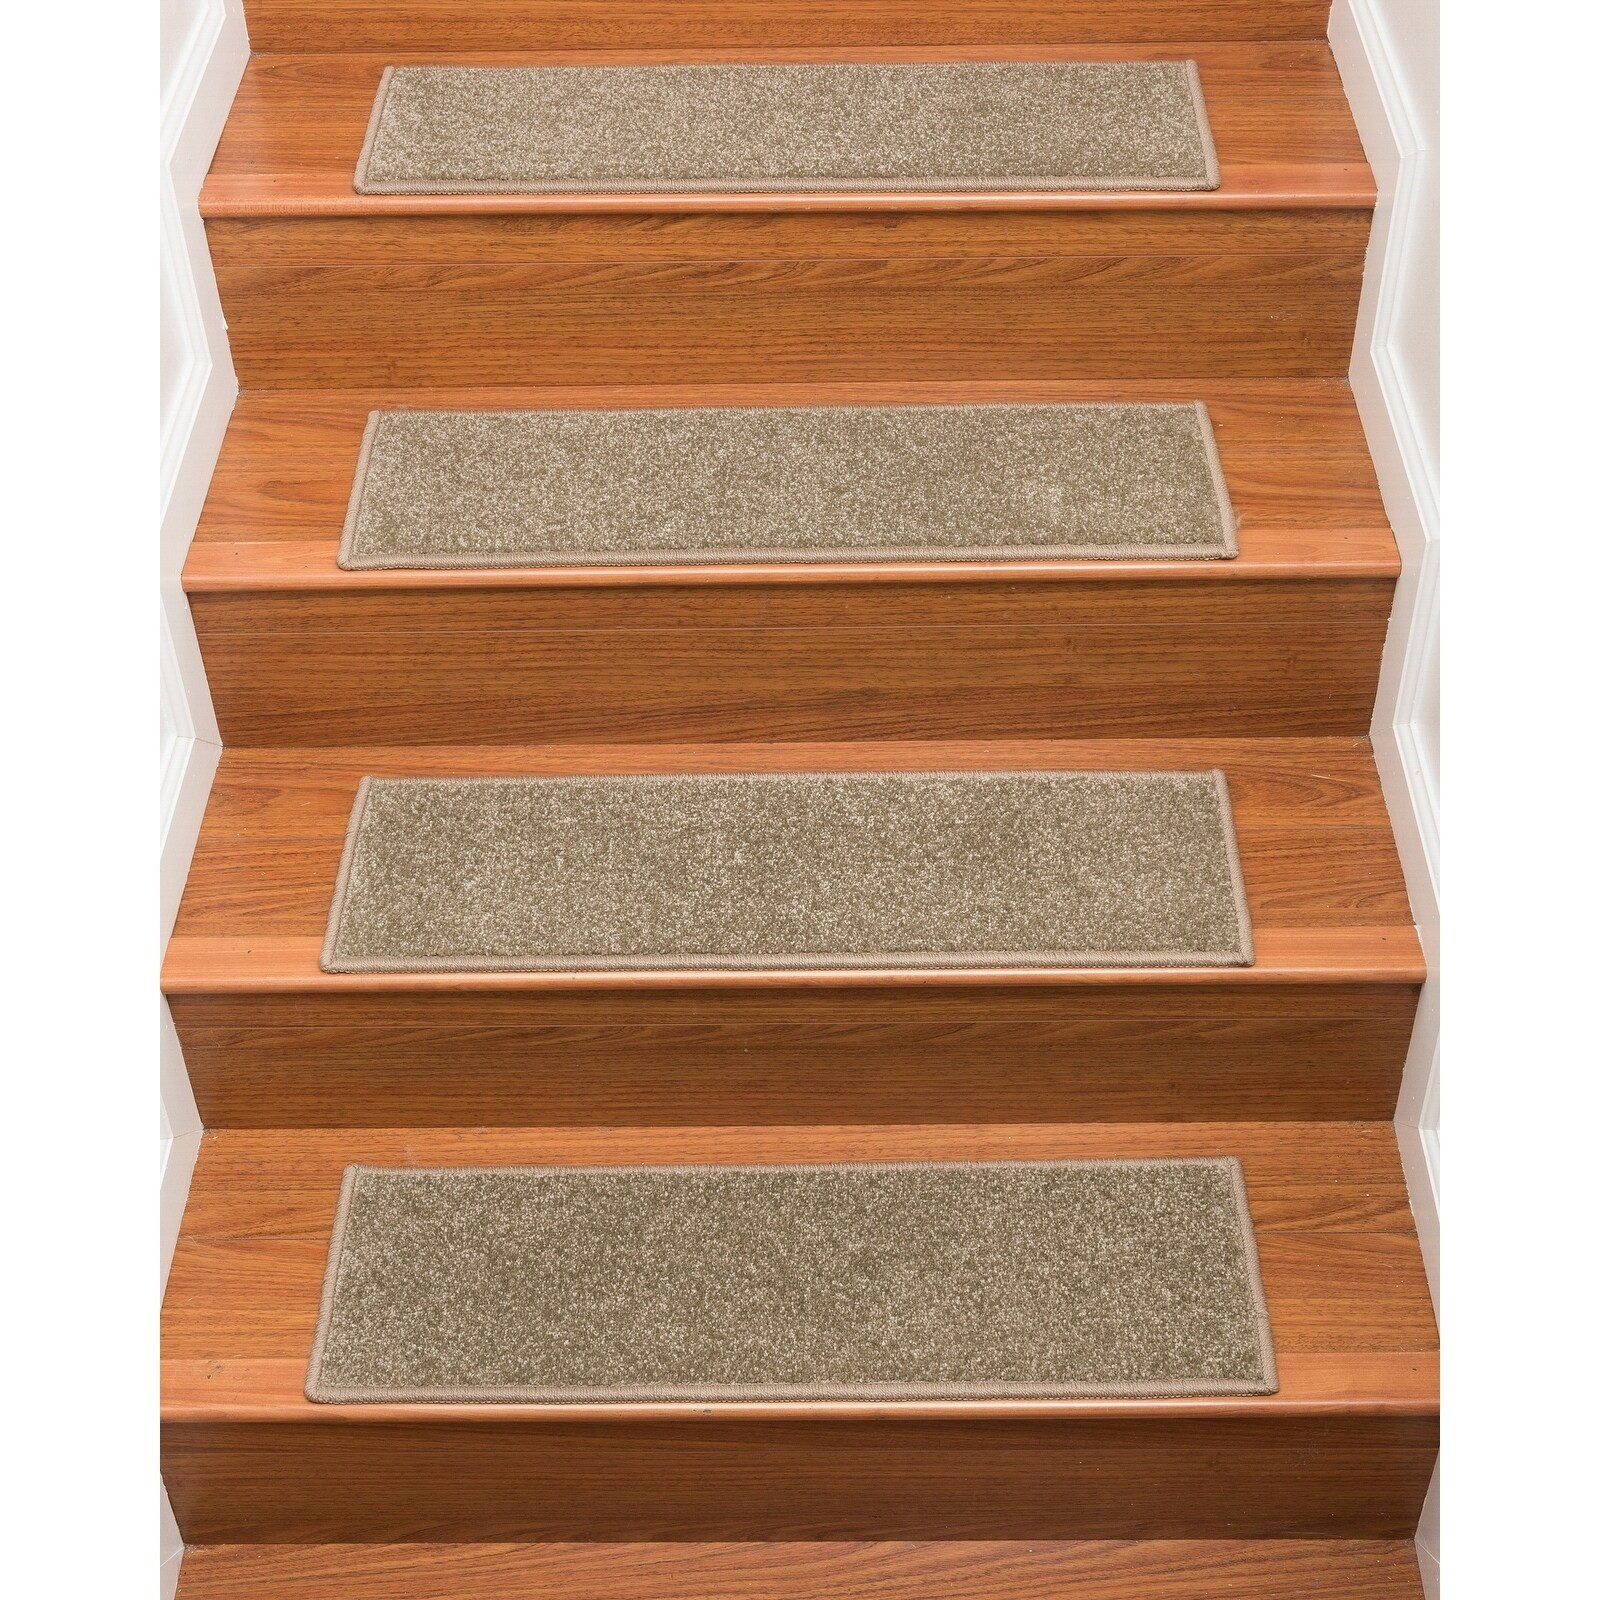 Naturalarearugs Hand Crafted Malvern Carpet Stair Treads Set Of 13 9 X 29 Free Shipping Today 20558440